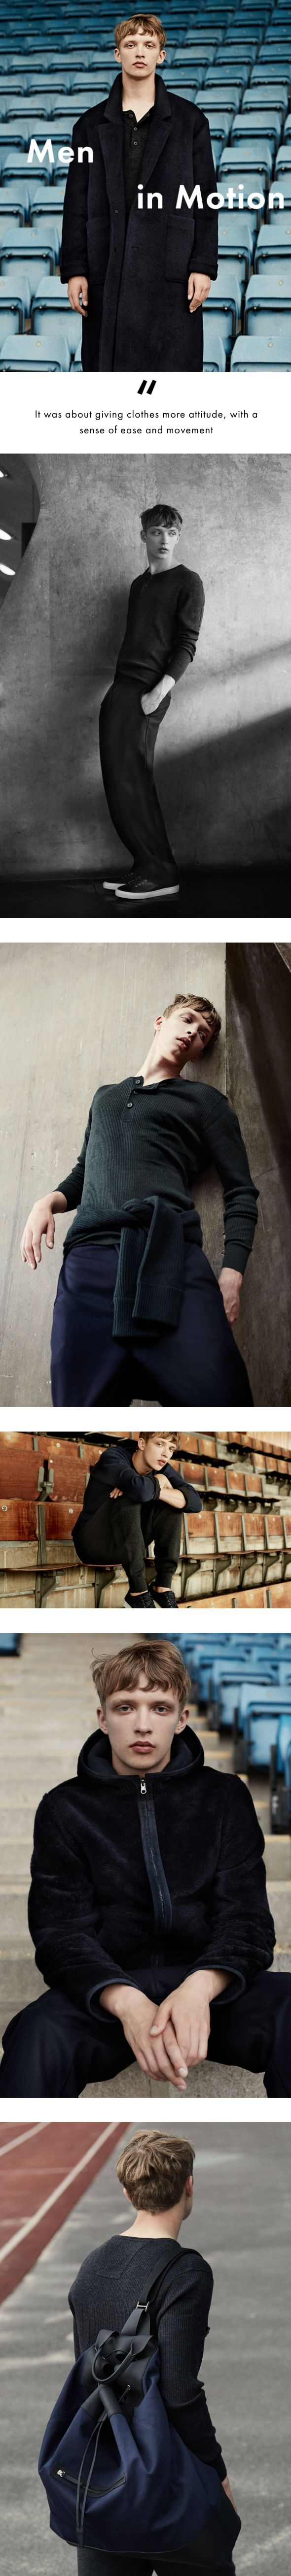 Discover Men in Motion. A 10-piece capsule collection for men with a fluid and luxurious aesthetic that celebrates movement. Shop Italian fabrics, including cashmeres and alpaca across jumpers, jackets, trousers and more.